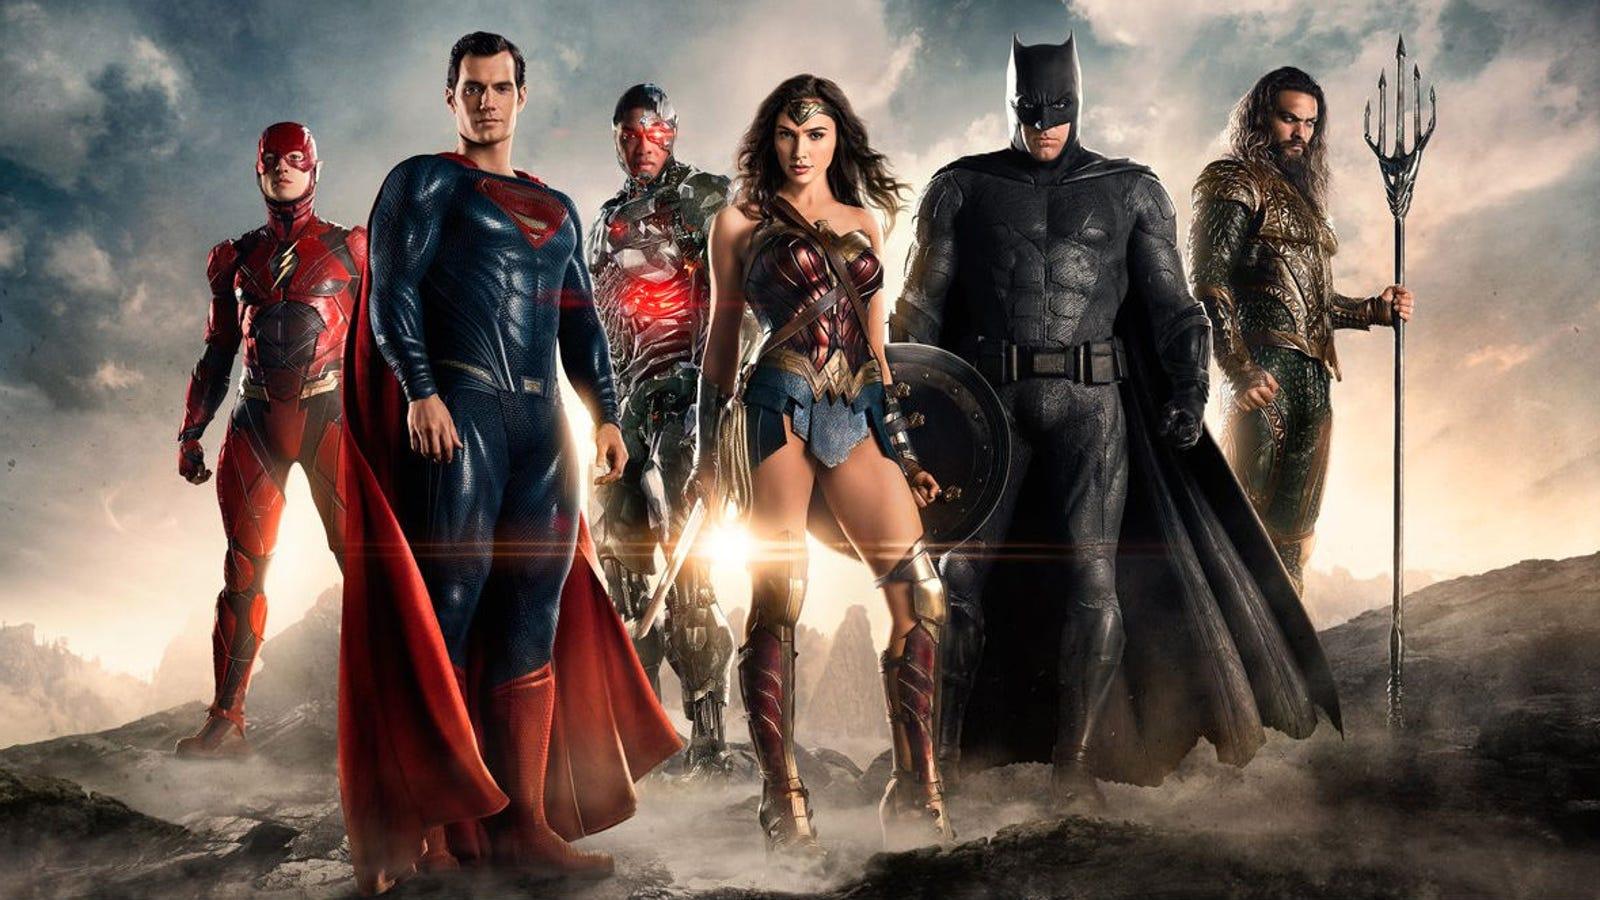 How Zack Snyder Hopes Justice League Will Save His DC Universe